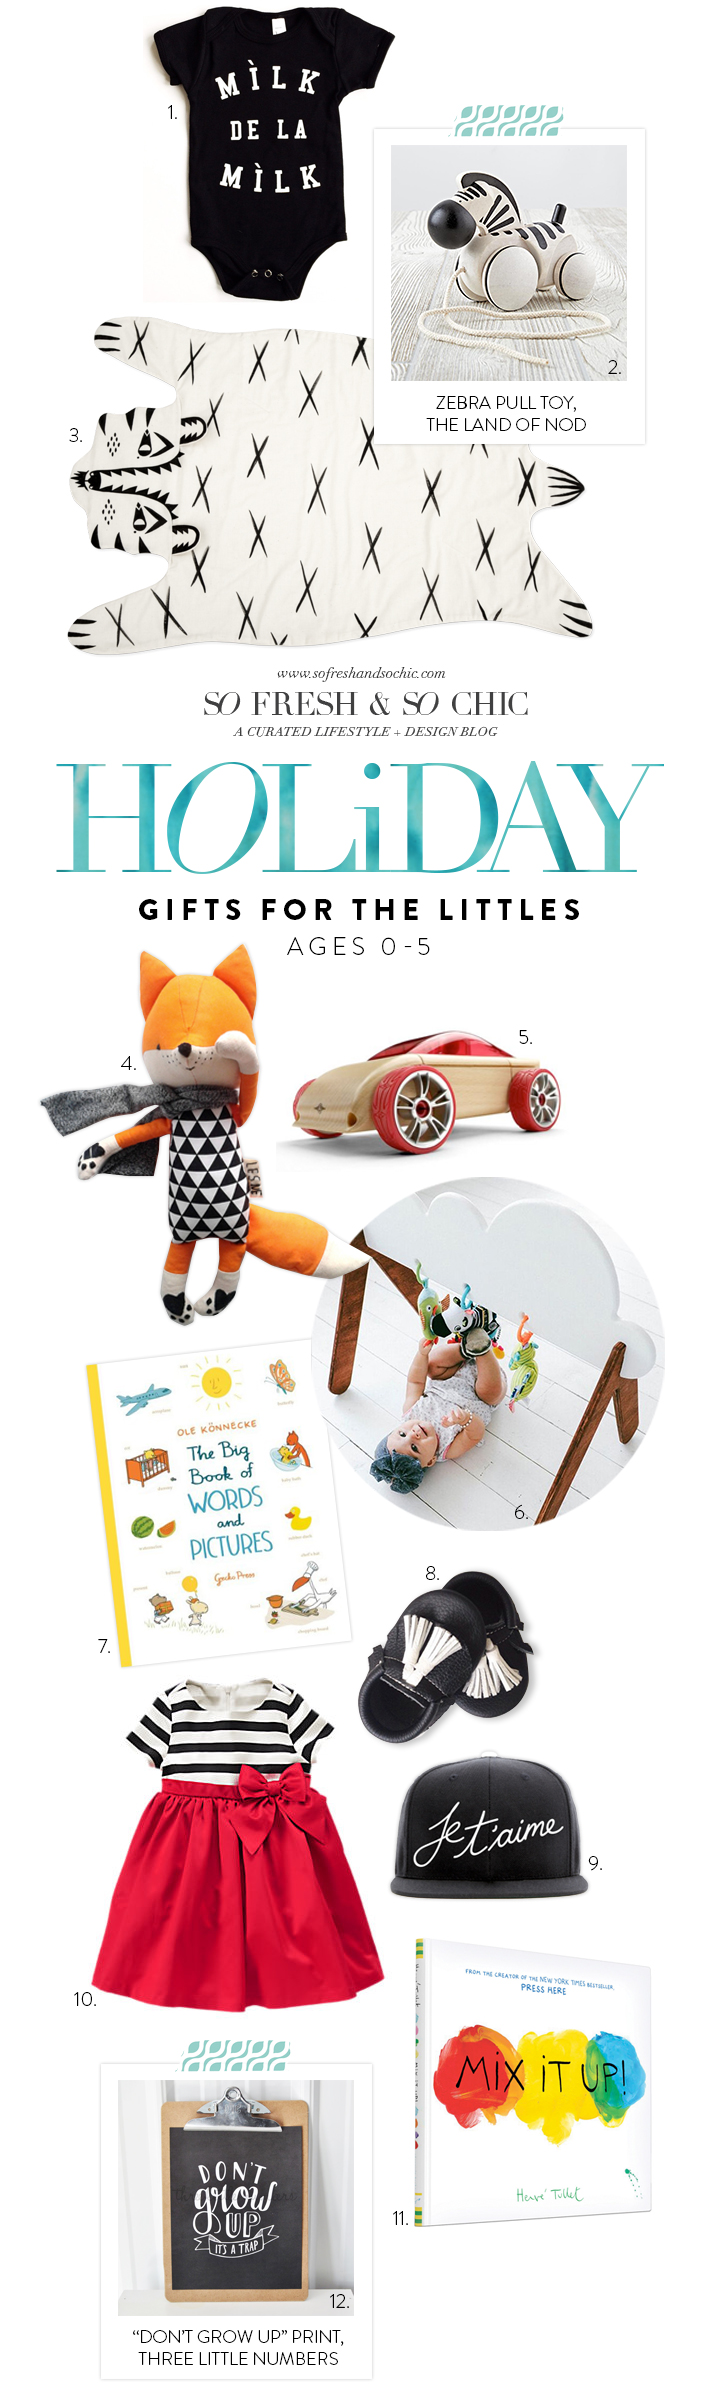 So Fresh and So Chic// A  Holiday Gift Guide for Kids Ages 0-5! #sofreshandsochic #giftsforkids